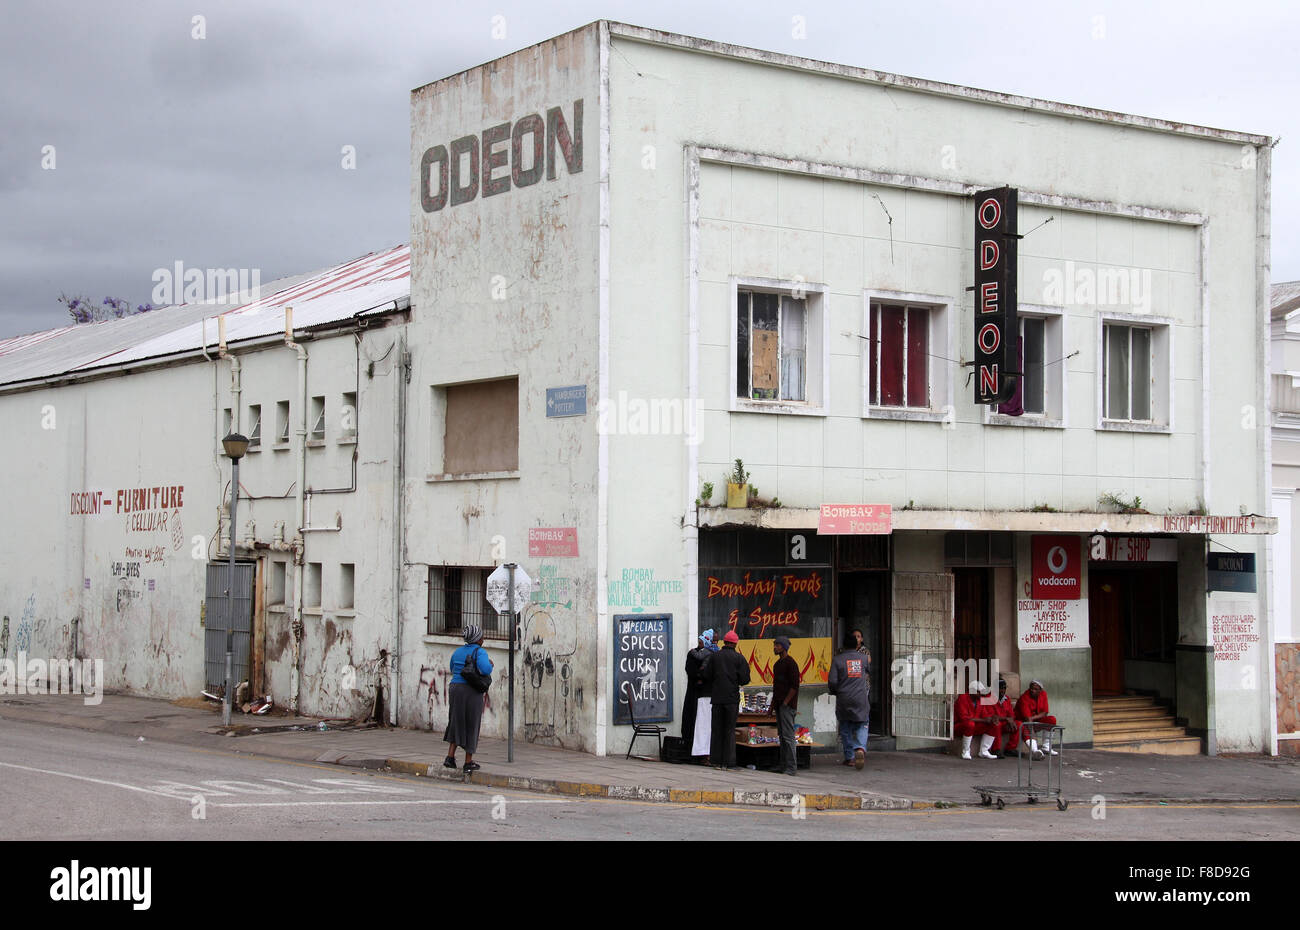 Odeon Cinema Building at Grahamstown in the Eastern Cape Province of South Africa - Stock Image